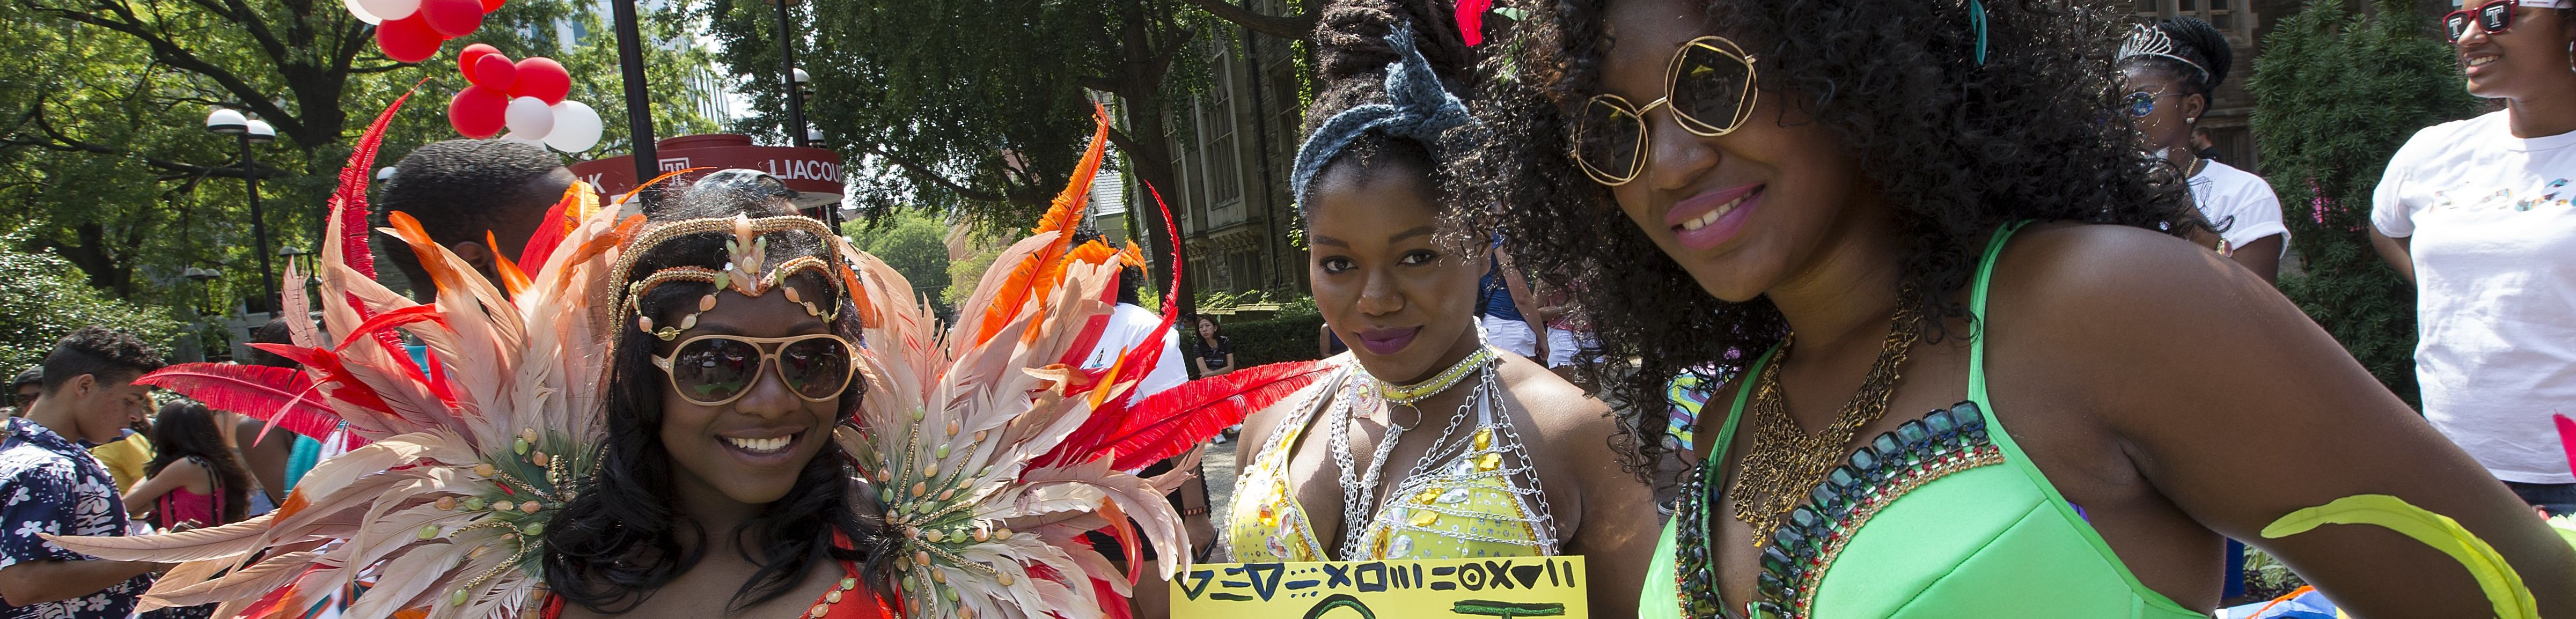 Students from SOCA wearing cultural dress at TempleFest